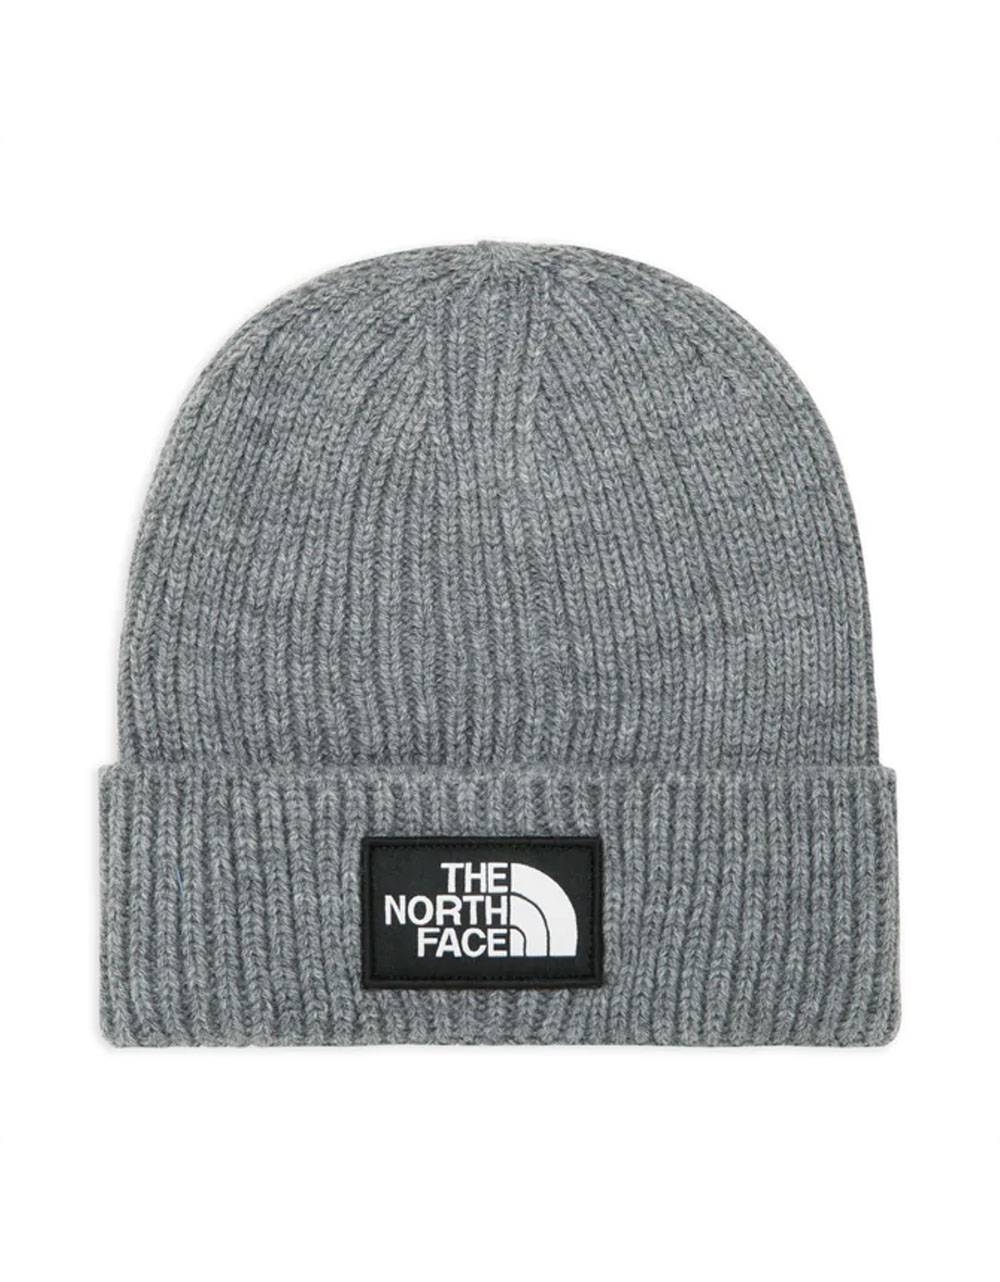 The North Face box logo cuff regular beanie - tnf medium grey THE NORTH FACE Beanie 35,00 €